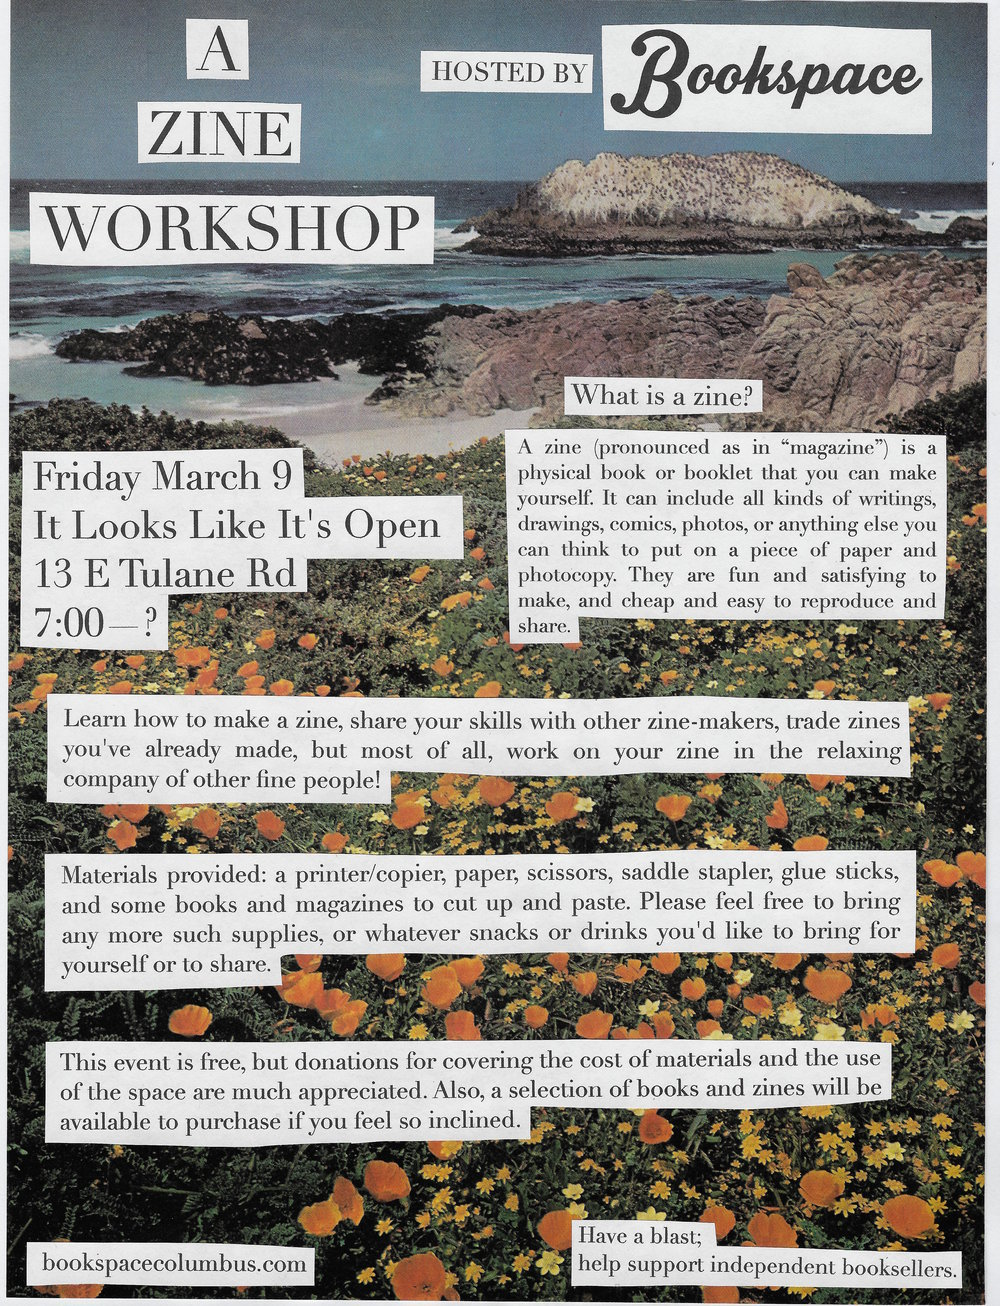 "[image description: flyer for the zine-making workshop. The text in the photo reads: ""A zine making workshop hosted by BookSpace. Friday, March 9th at It Looks Like It's Open at 13 E. Tulane Rd. at 7pm. What is a zine? A zine (pronounced as in ""magazine"") is a physical book or booklet that you can make yourself. It can include all kinds of writing, comics, drawings, photos, or anything else you can think of to put on a piece of paper and photocopy. They are fun and satisfying to make and cheap and easy to reproduce and share. Learn how to make a zine, share your skills with other zine-makers, trade zines you've already made, but most of all, work on your zine in the relaxing company of other fine people. Materials provided: a printer/copier, paper, scissors, stapler, glue sticks, and some books and magazines to cut up and paste. Please feel free to bring any other such supplies or whatever snacks or drinks you'd like to bring for yourself or to share. The event is free, but donations for covering the cost of materials and use of the space are appreciated. A selection of books and zines will be available for purchase if you're so inclined.""]"